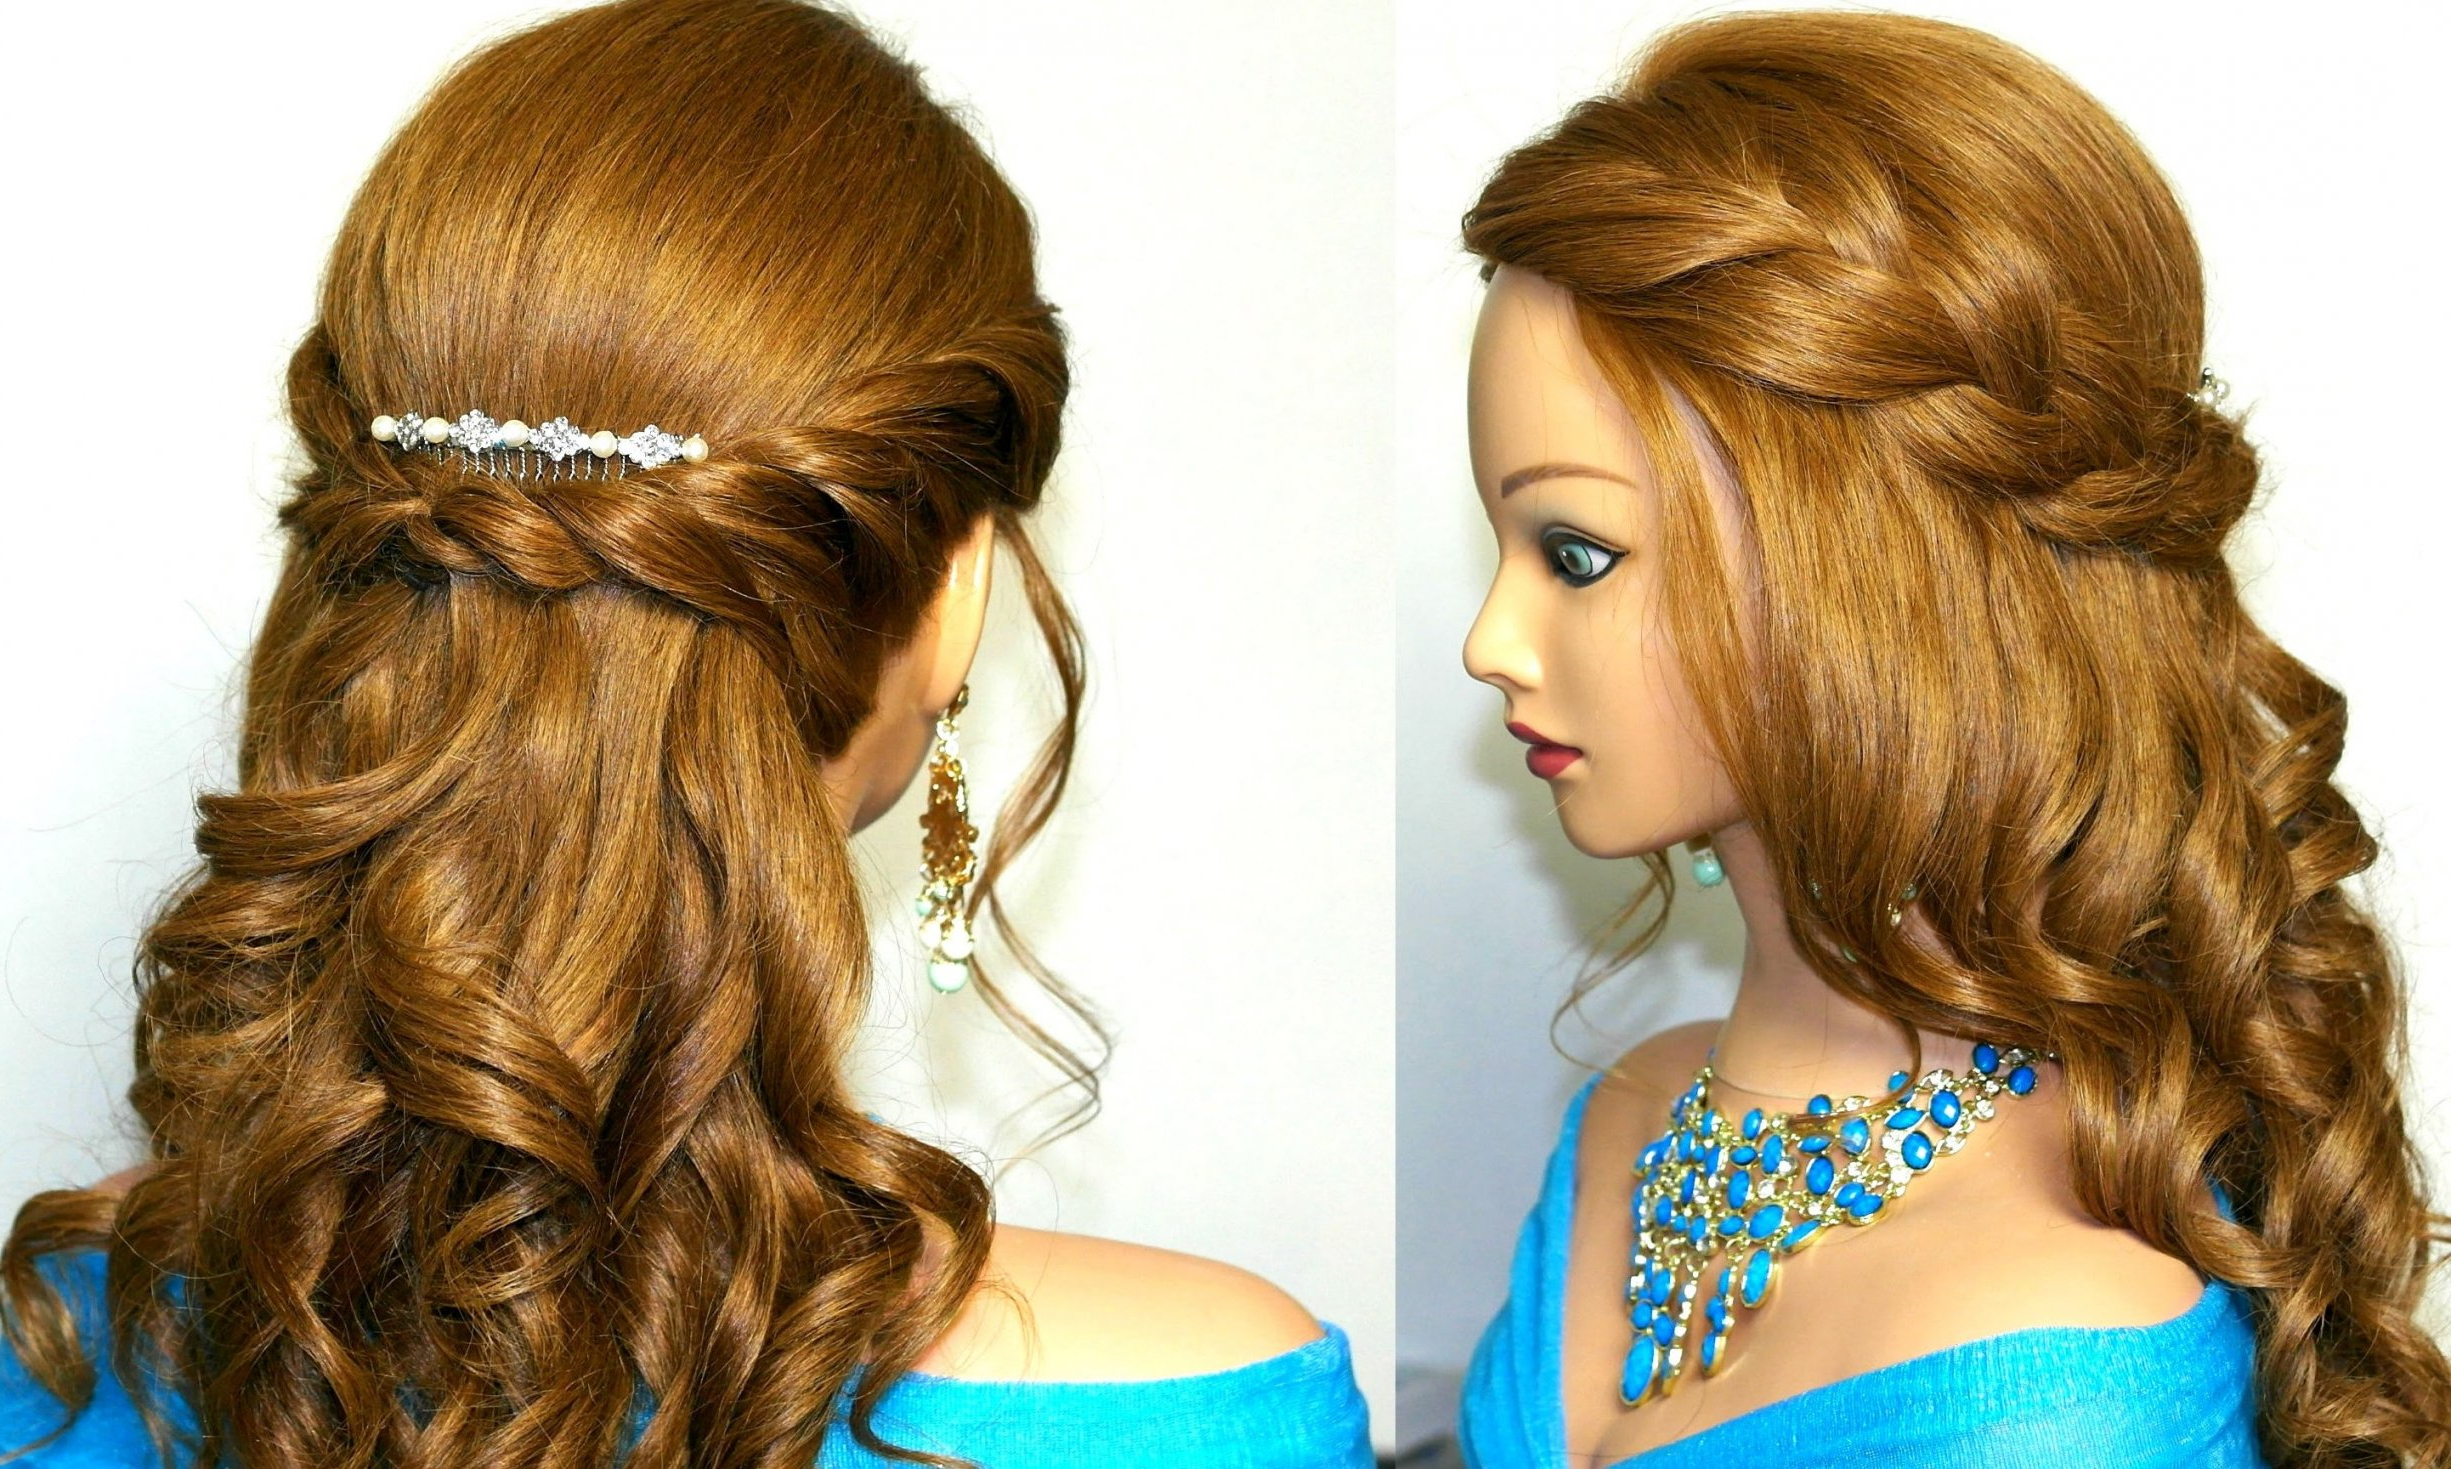 Long Curly Hairstyles Prom » Best Hairstyles & Haircuts For All Hair Inside Well Liked Curly Medium Hairstyles For Prom (View 4 of 20)